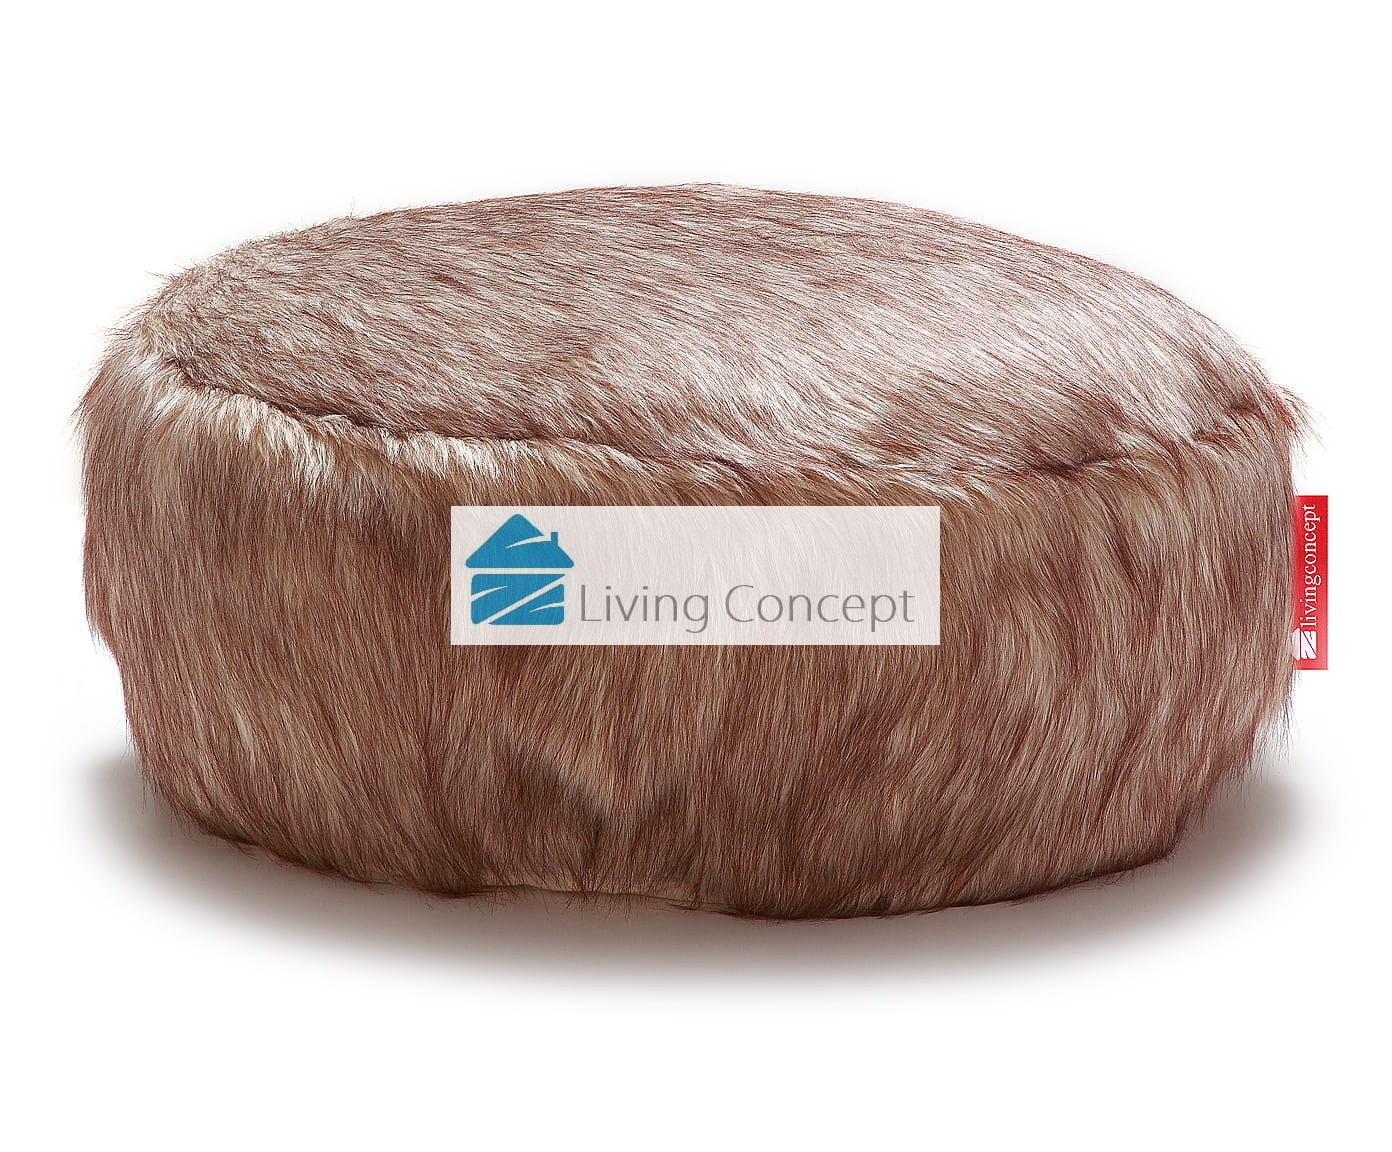 Tremendous Cloud Pouf O 80X30 Cm Tundra Wolf Bean Bag Squirreltailoven Fun Painted Chair Ideas Images Squirreltailovenorg